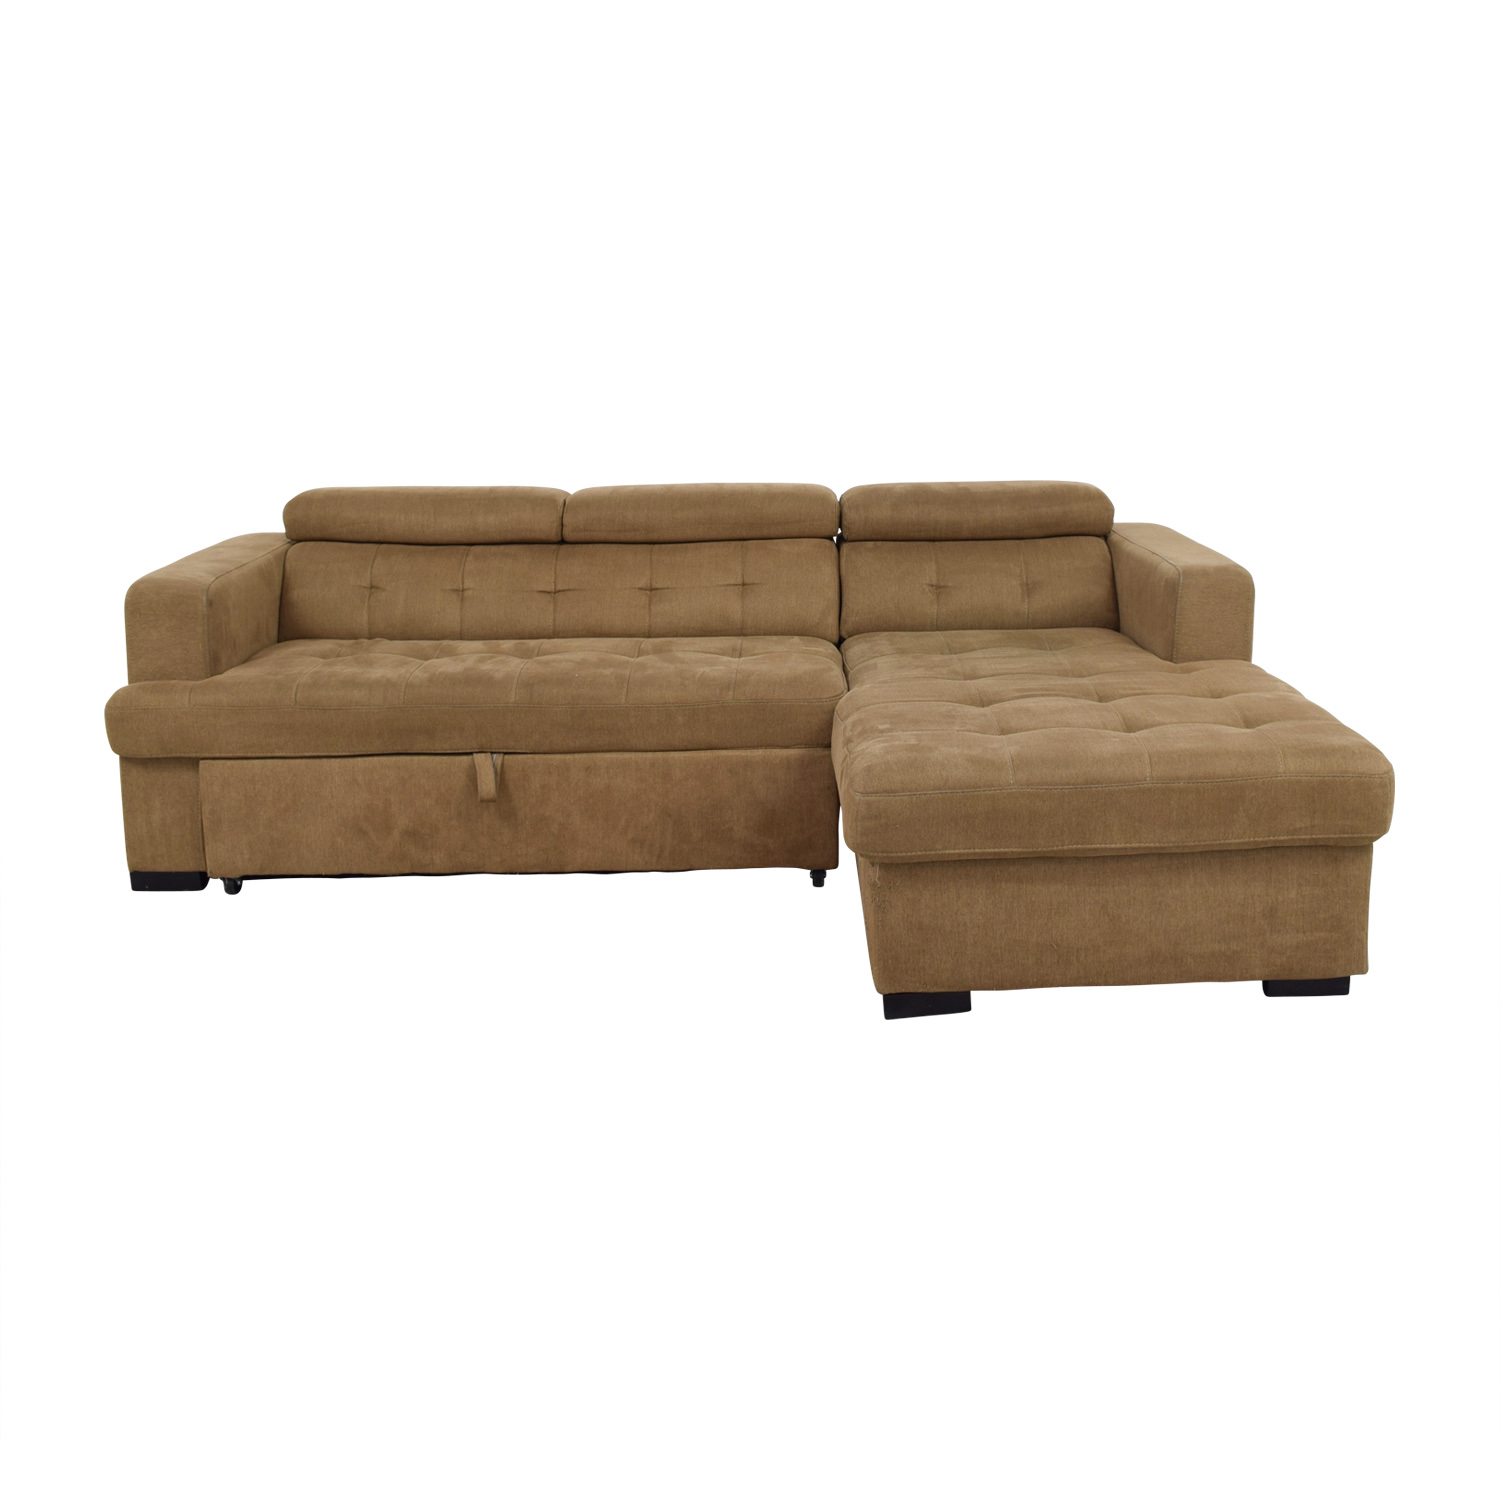 Bobs Furniture Brown Pull Out with Chaise Storage Bobs Furniture